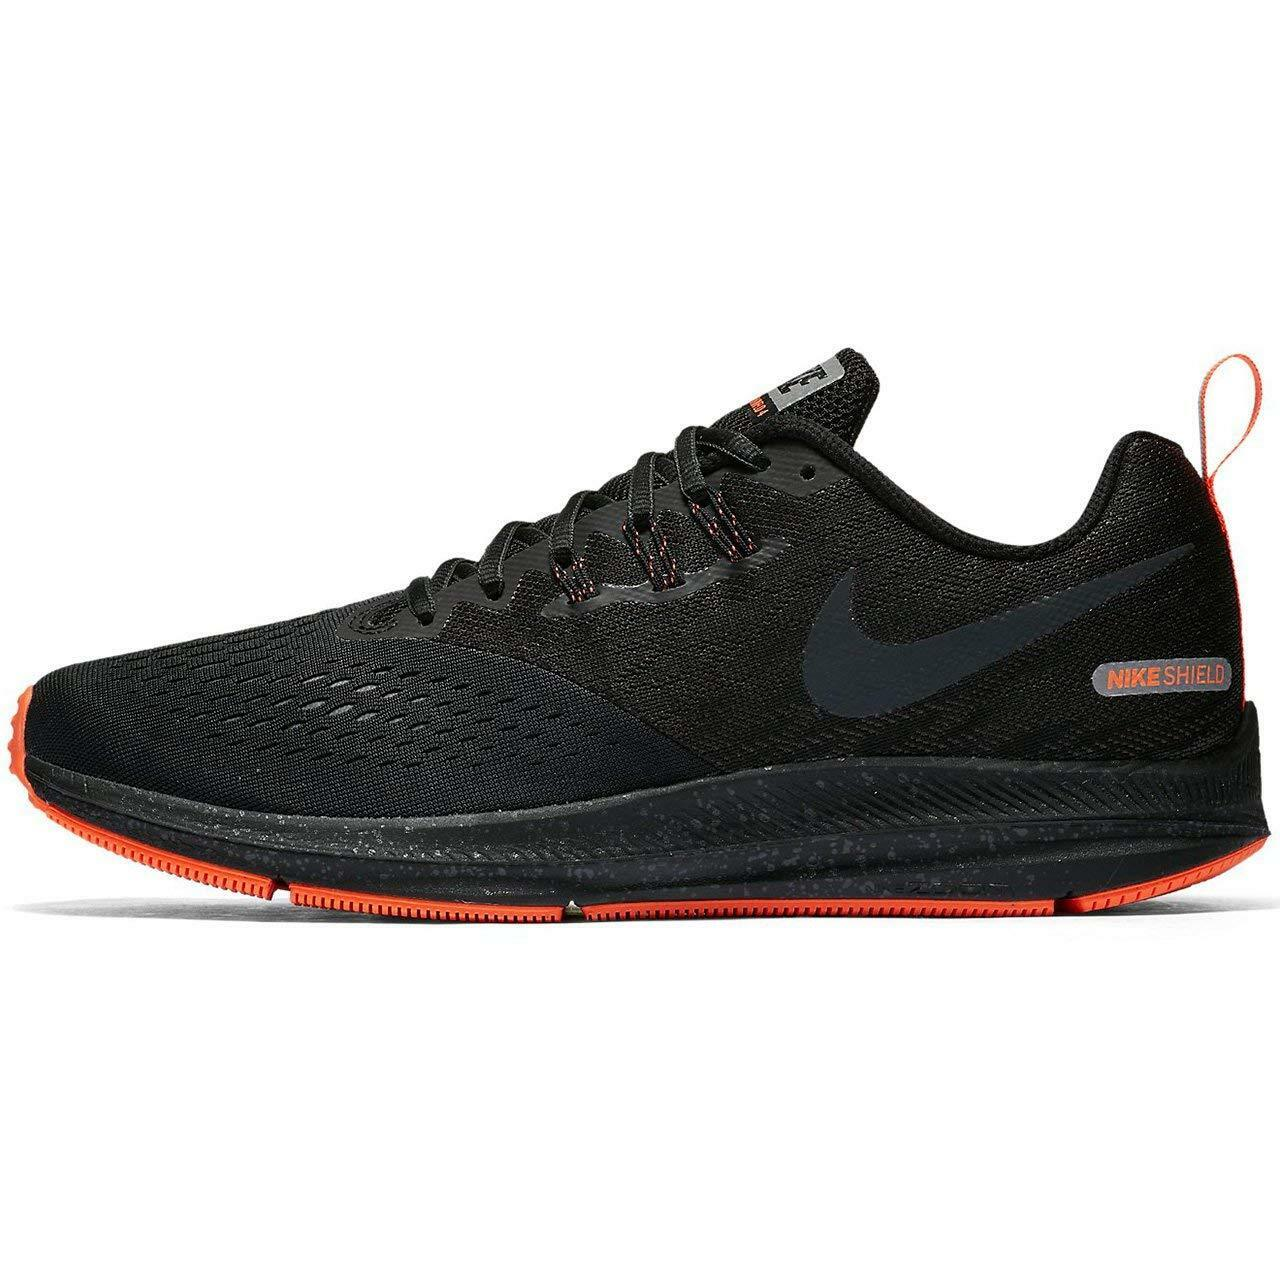 size 40 256ca 73af5 Men's Nike Zoom Winflo 4 Shield Running Shoes, 921704 001 Multi Sizes  Black/Anth